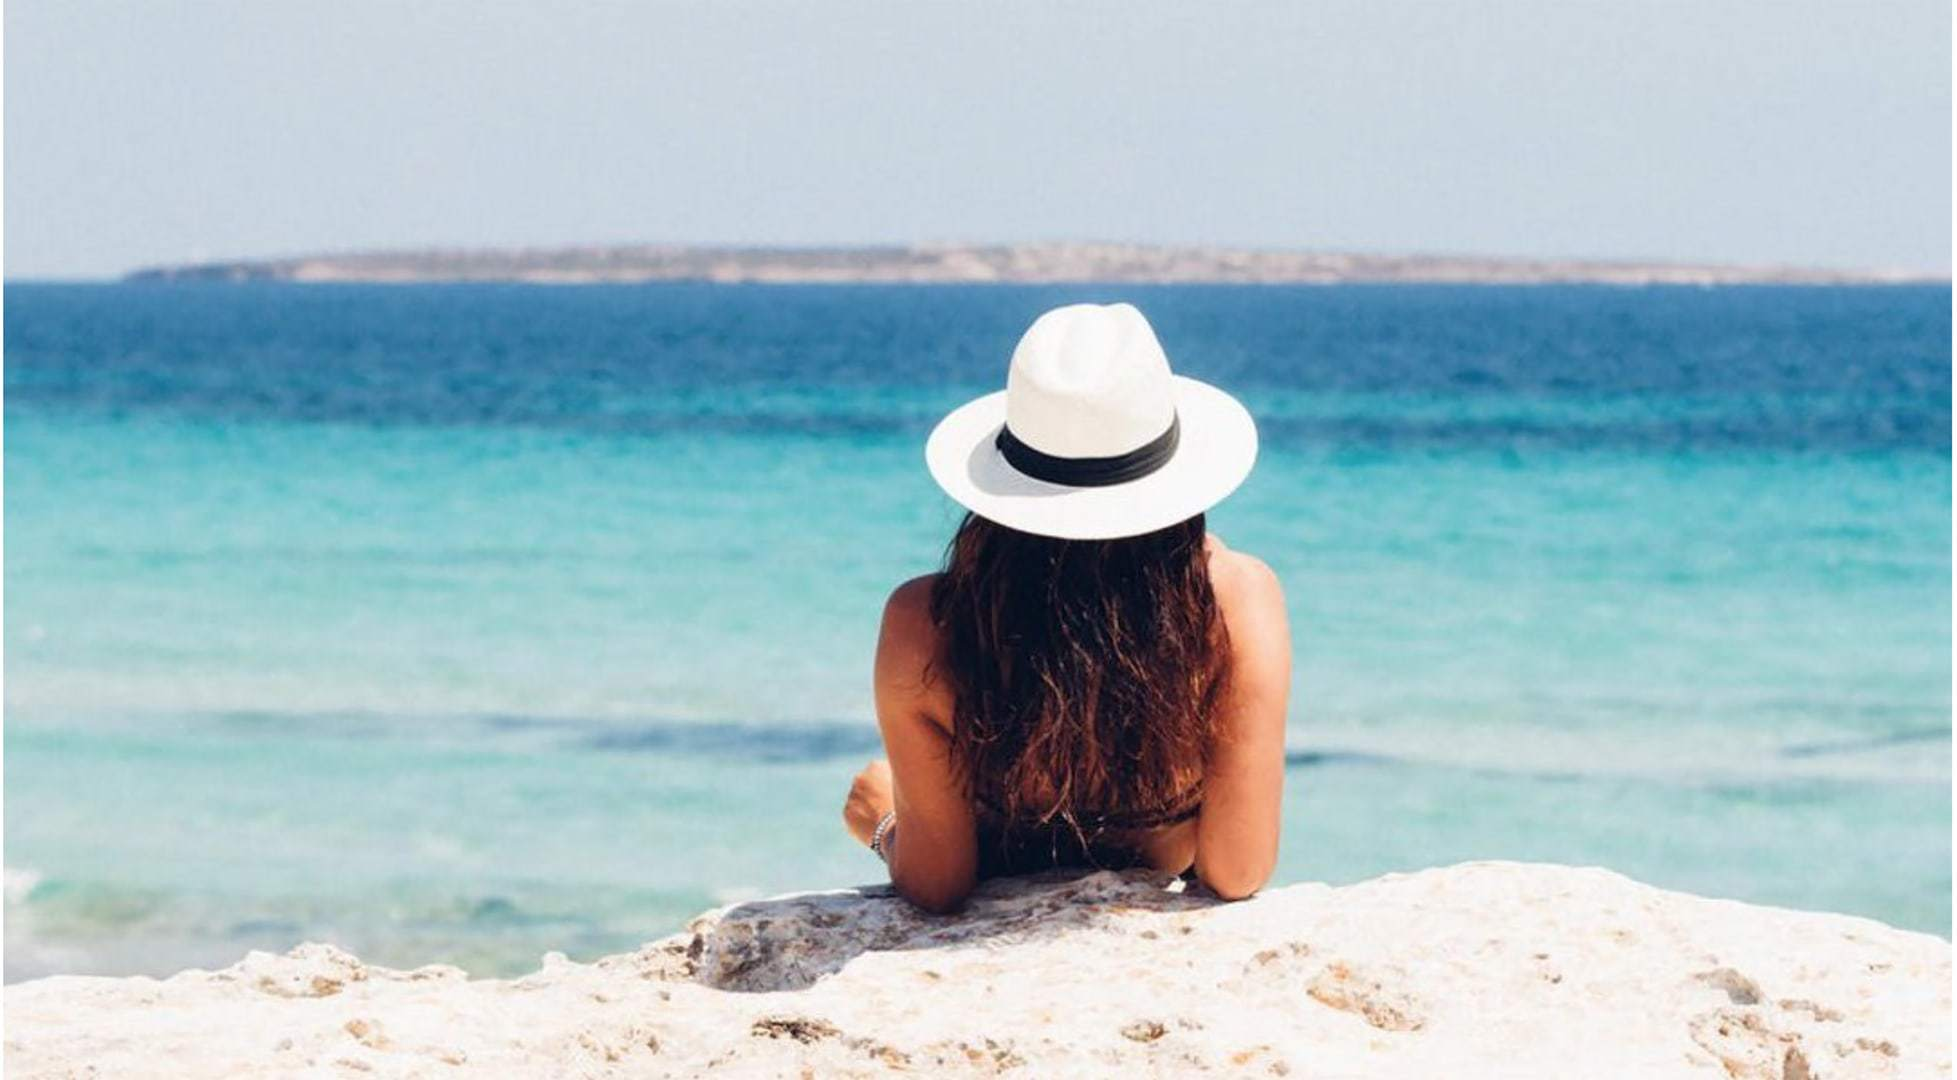 Photo of a woman, wearing a hat, relaxing on the beach looking out on the ocean.